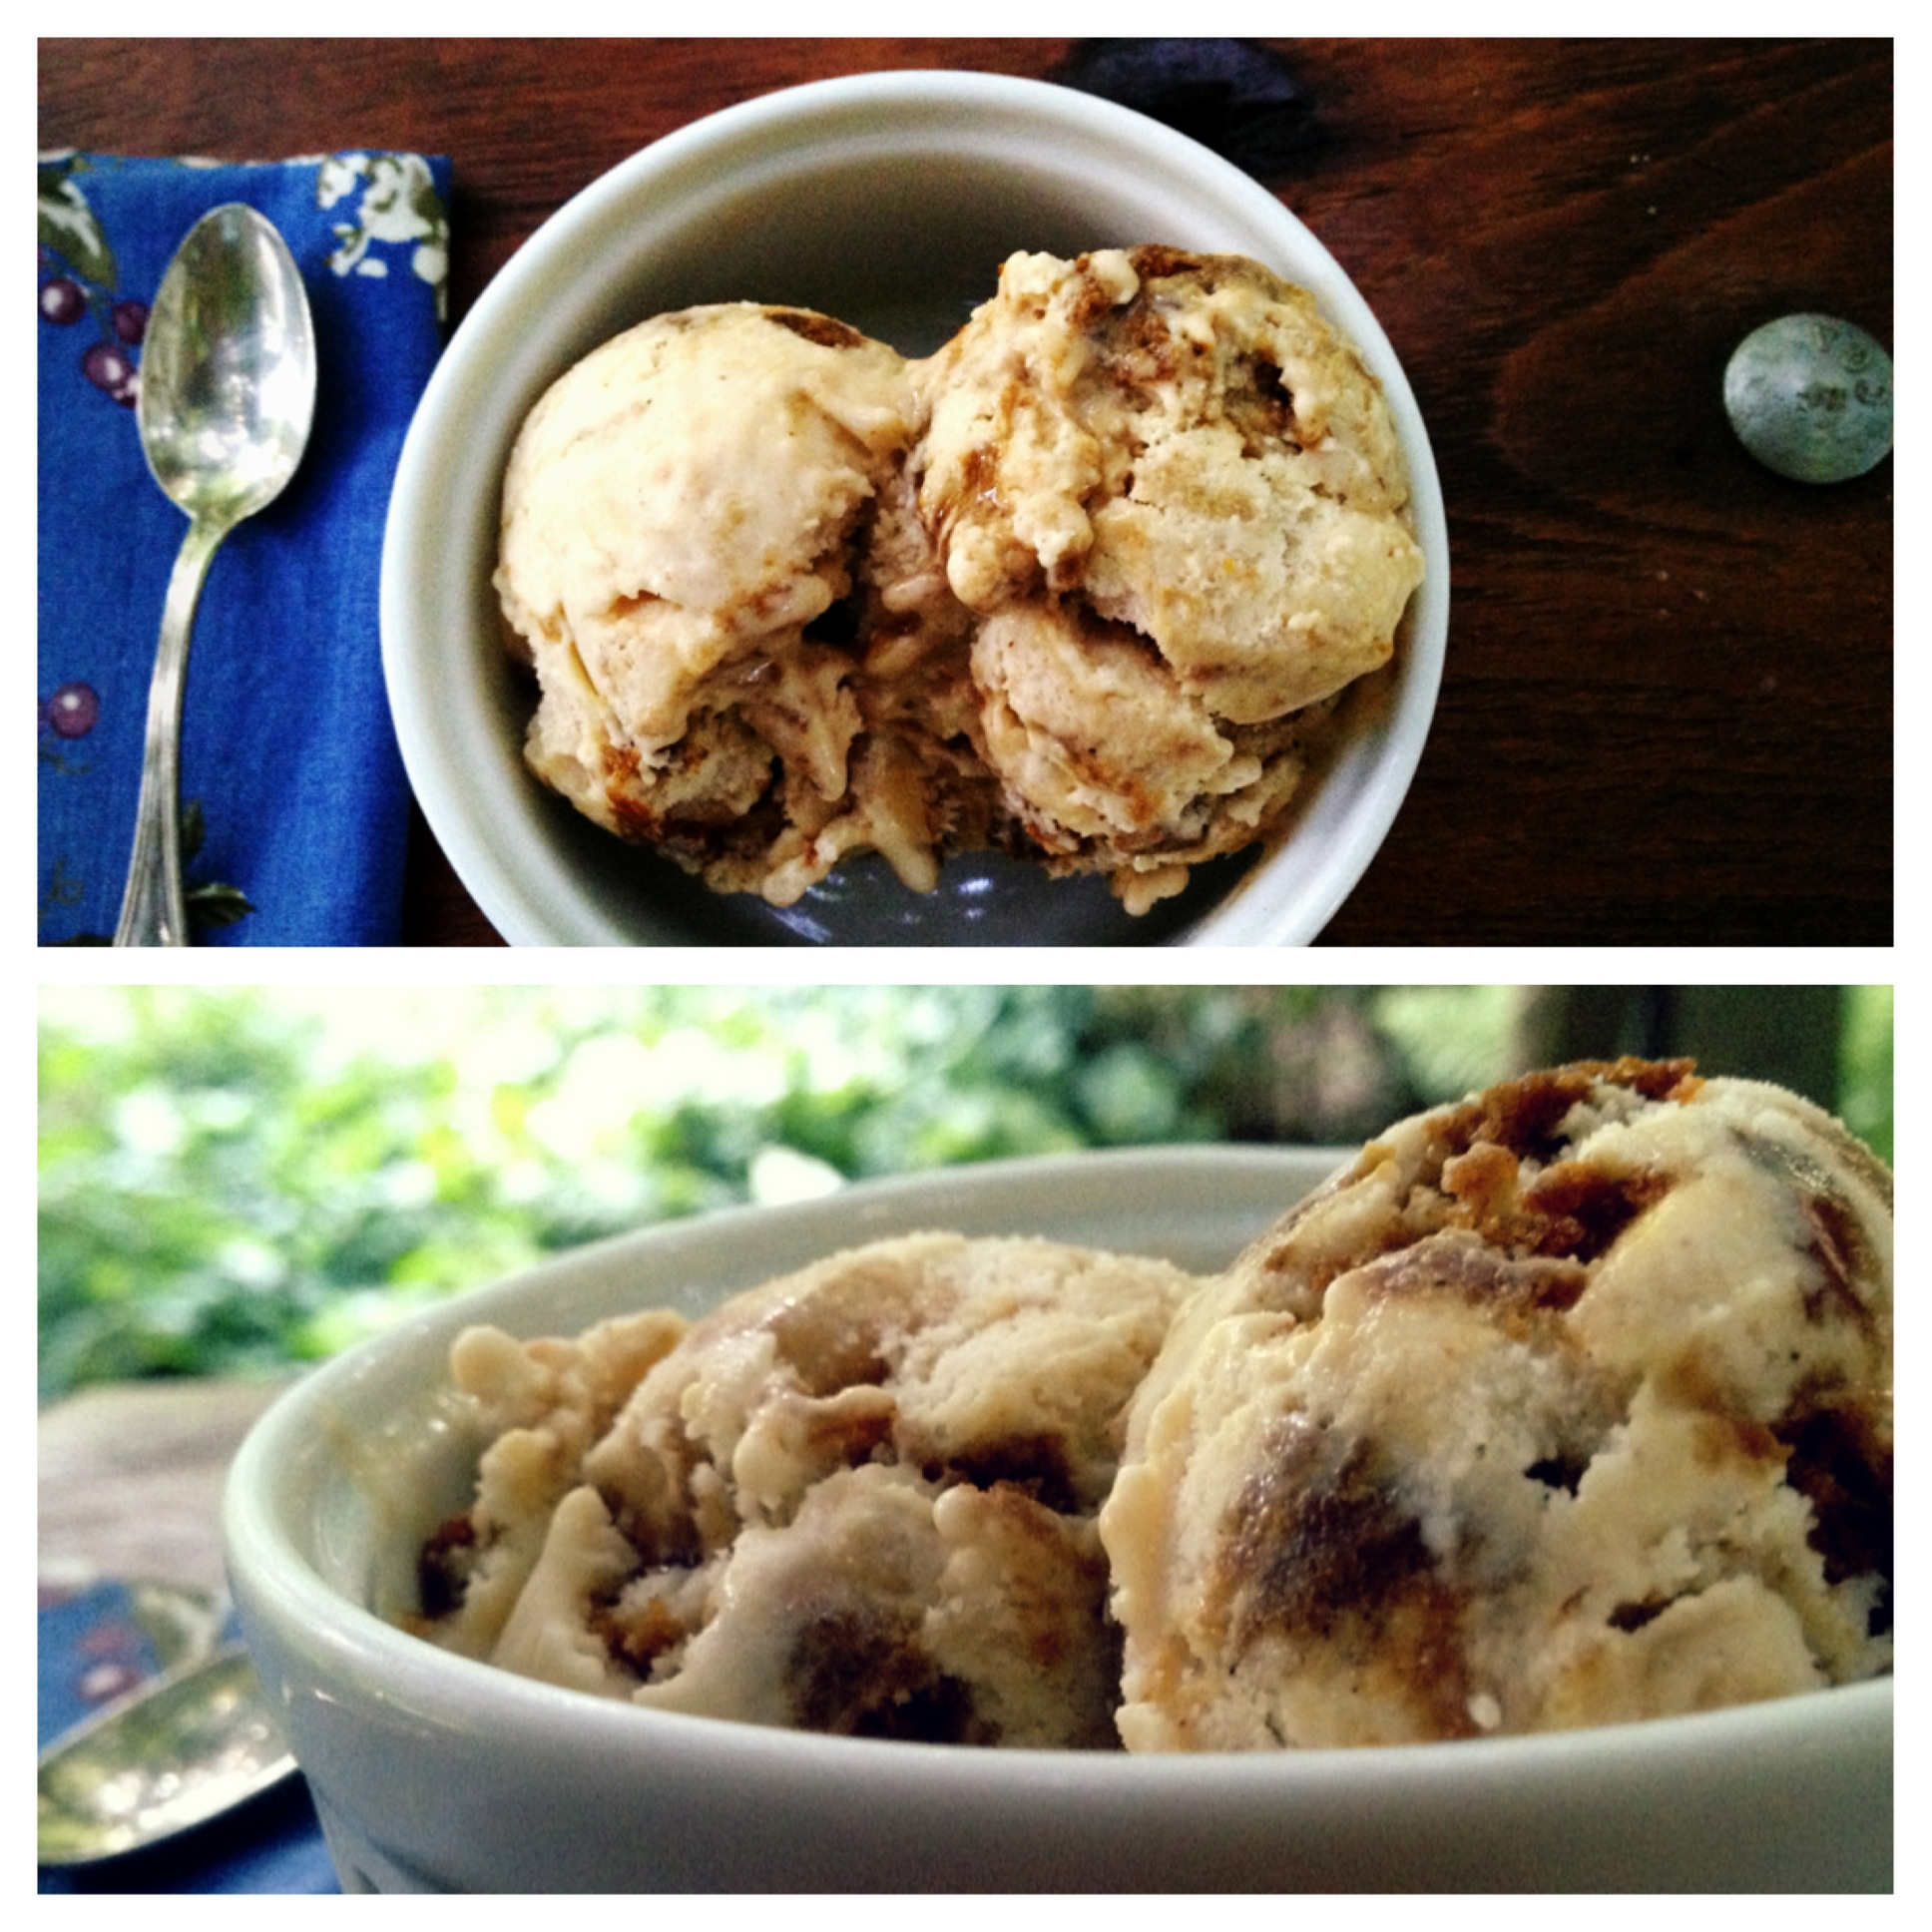 Caramelized Apple Molasses Cookie Ice Cream